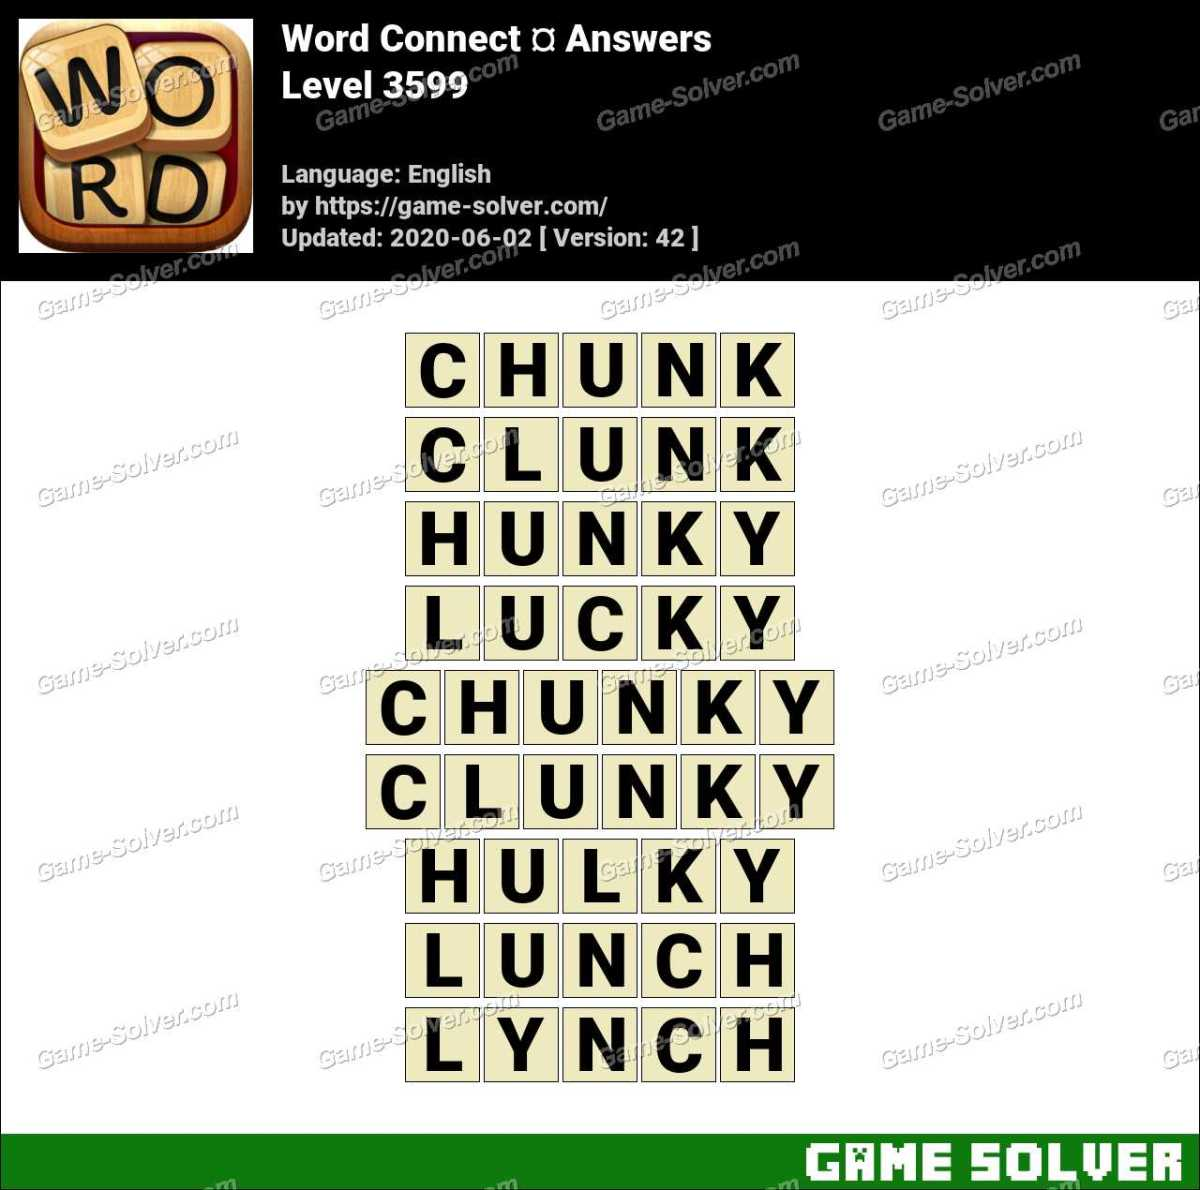 Word Connect Level 3599 Answers